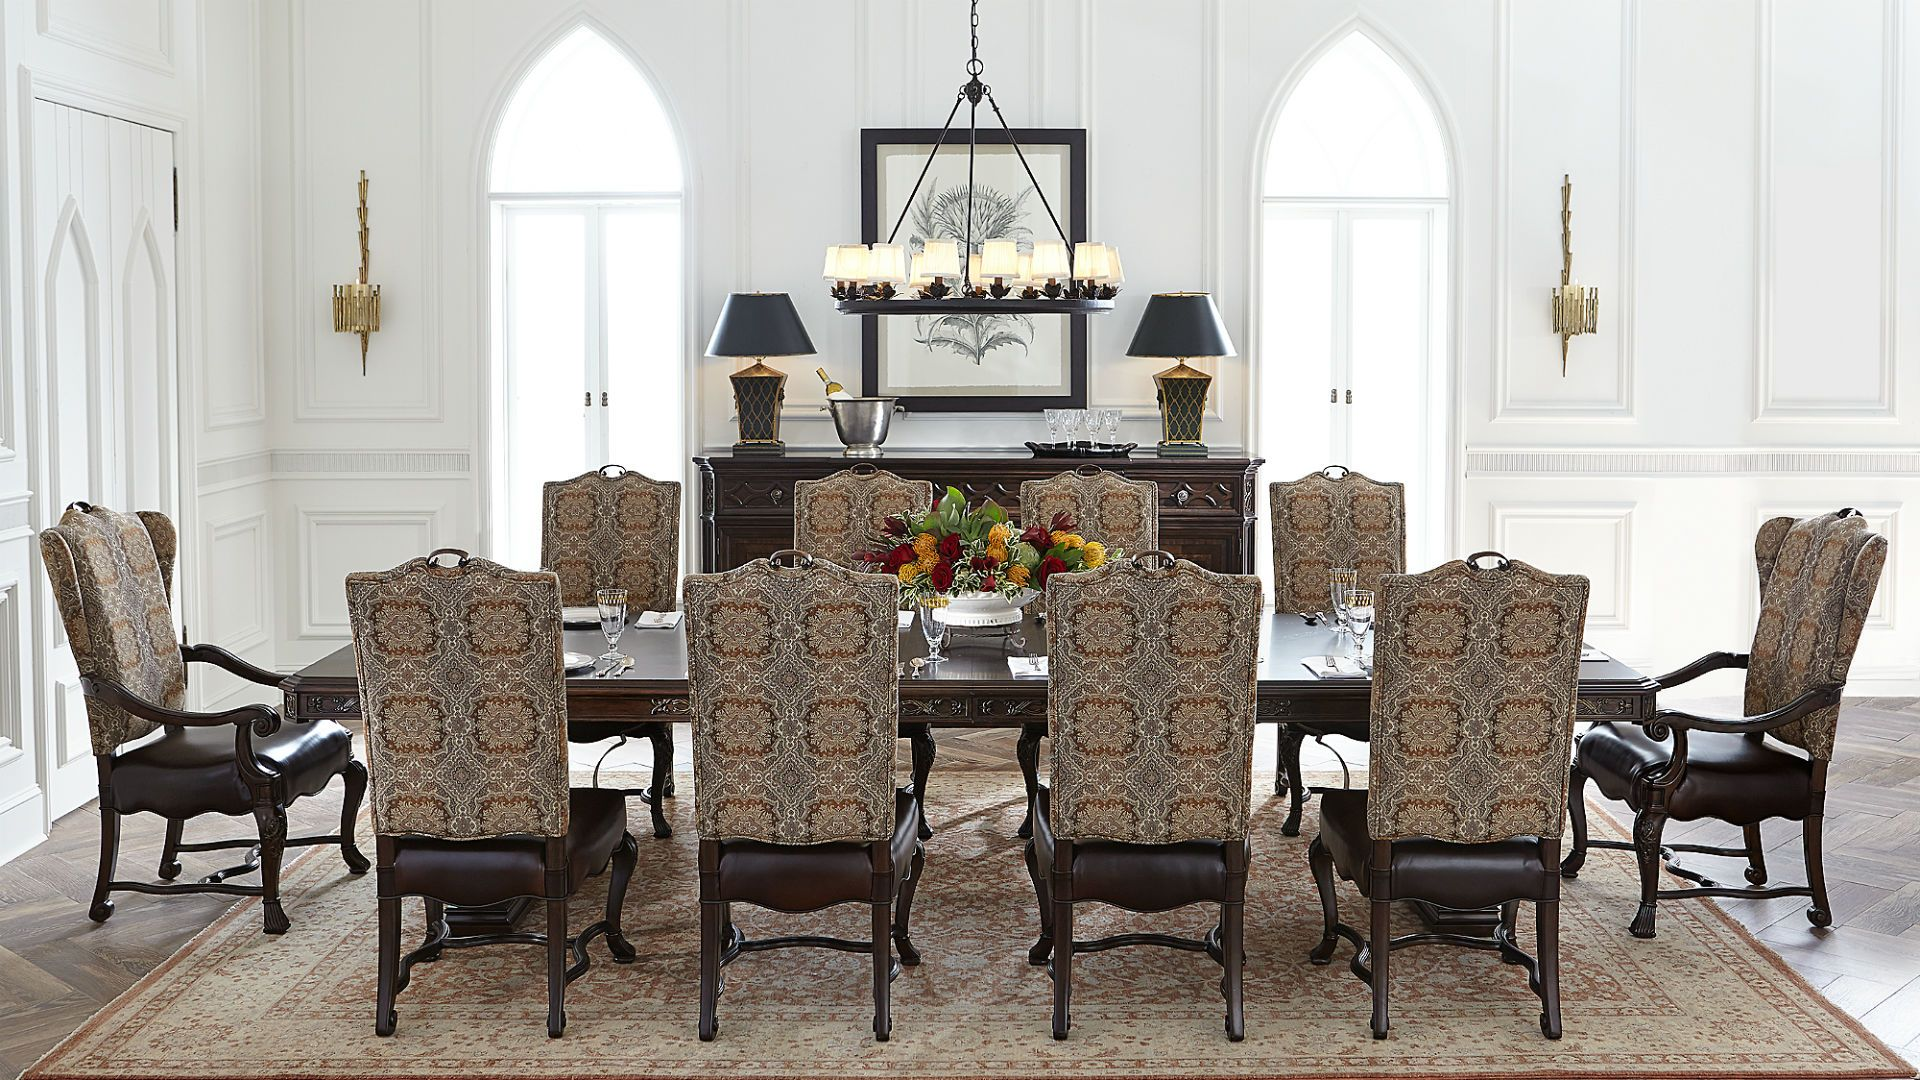 Casa D'onore  Dining Room  Stanley Furniture  Casa D'onore Best Stanley Dining Room Set Design Decoration